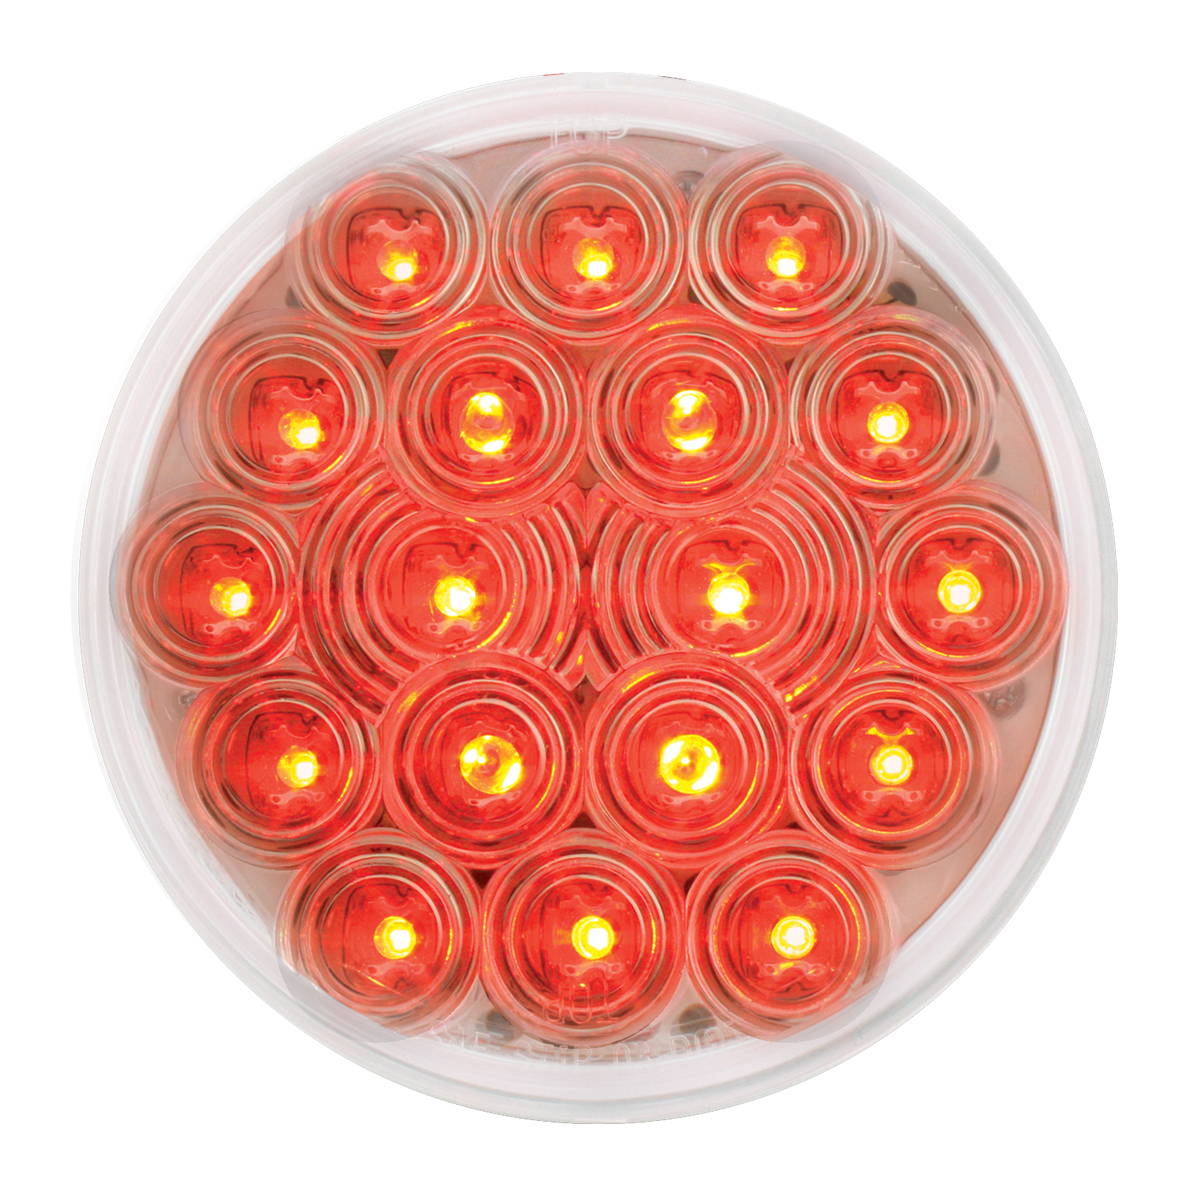 "#76453 4"" Round Fleet LED Flat Red/Clear Light"